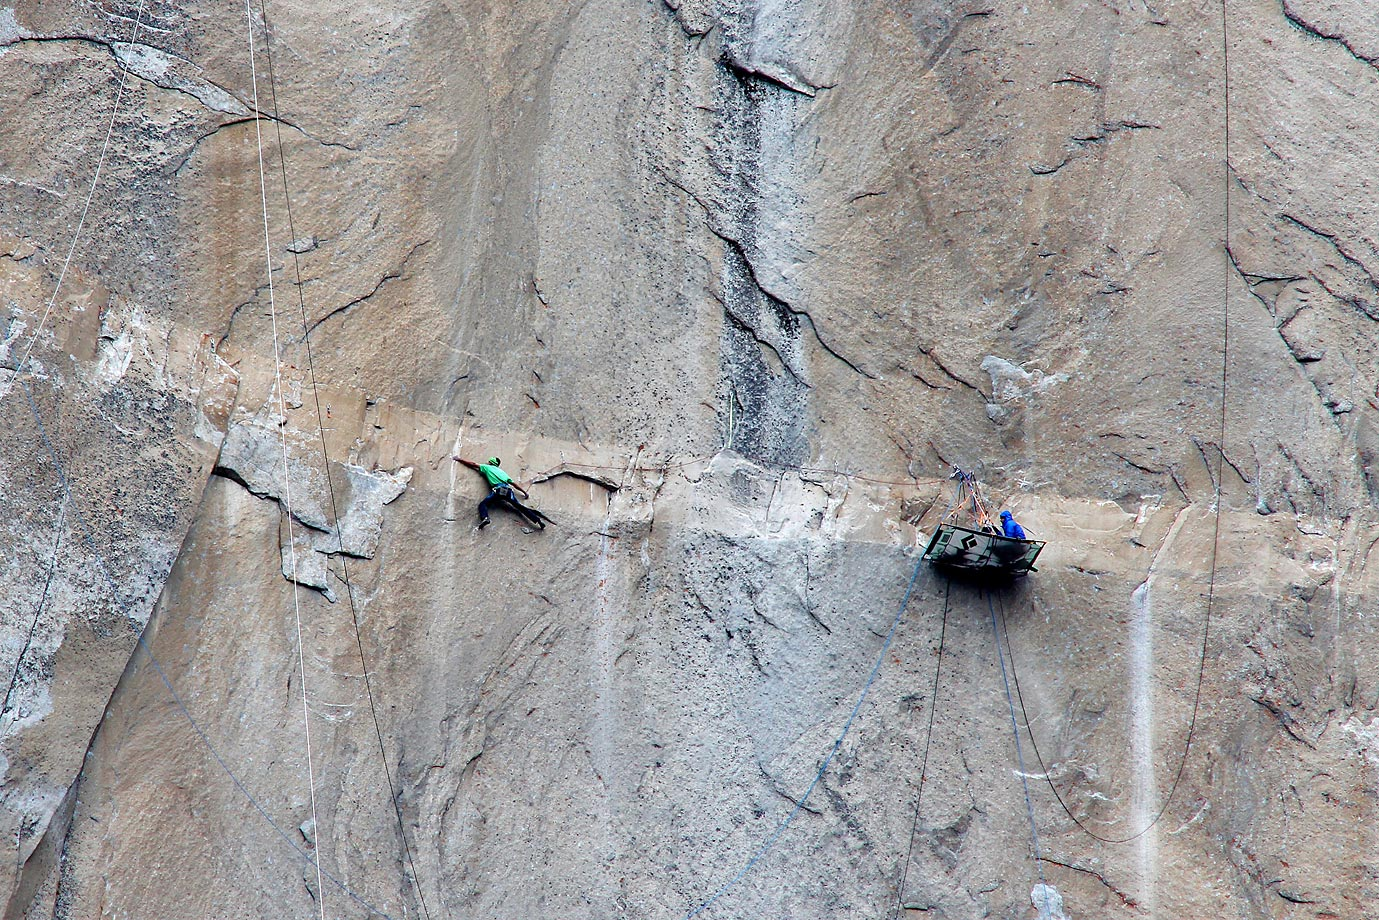 Kevin Jorgeson (in green) climbing on Pitch 15 while Tommy Caldwell belays.